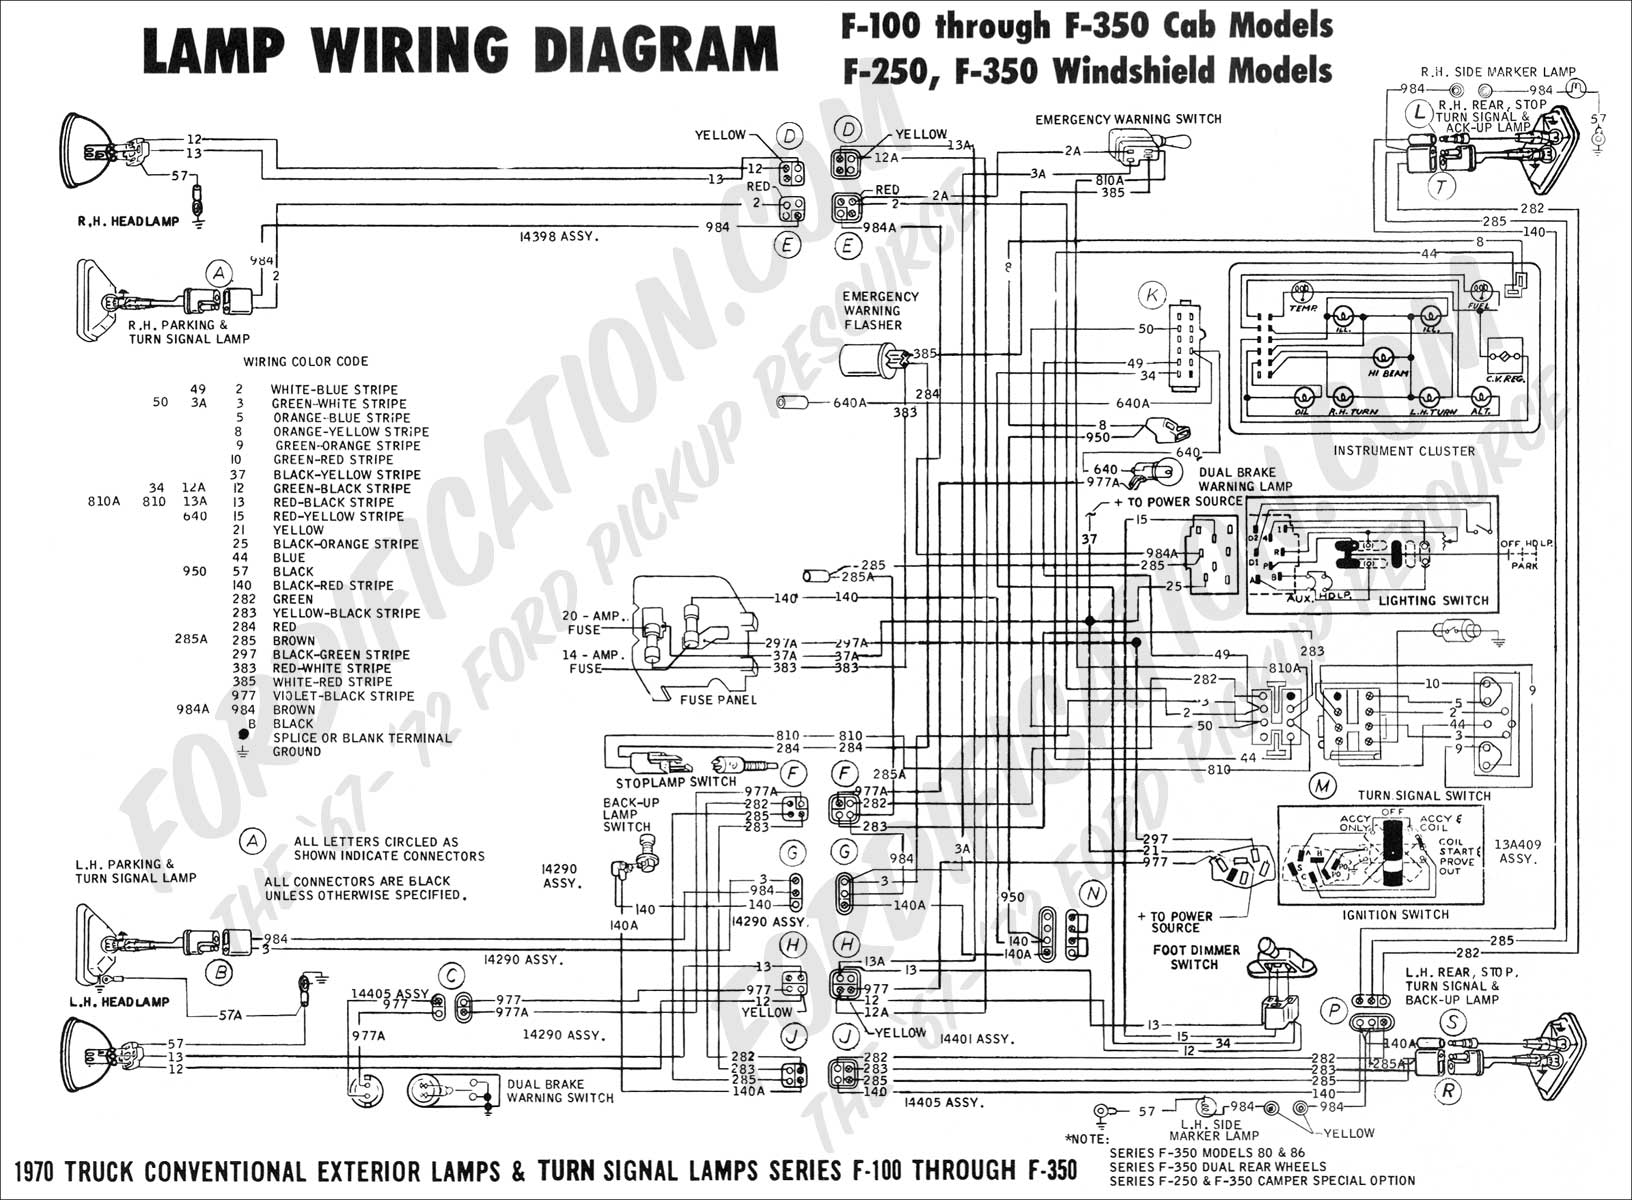 1999 Ford F750 Fuse Diagram Opinions About Wiring Diagram \u2022 1999 F150 Wiring  Harness Diagram 1999 F150 Wiring Diagram